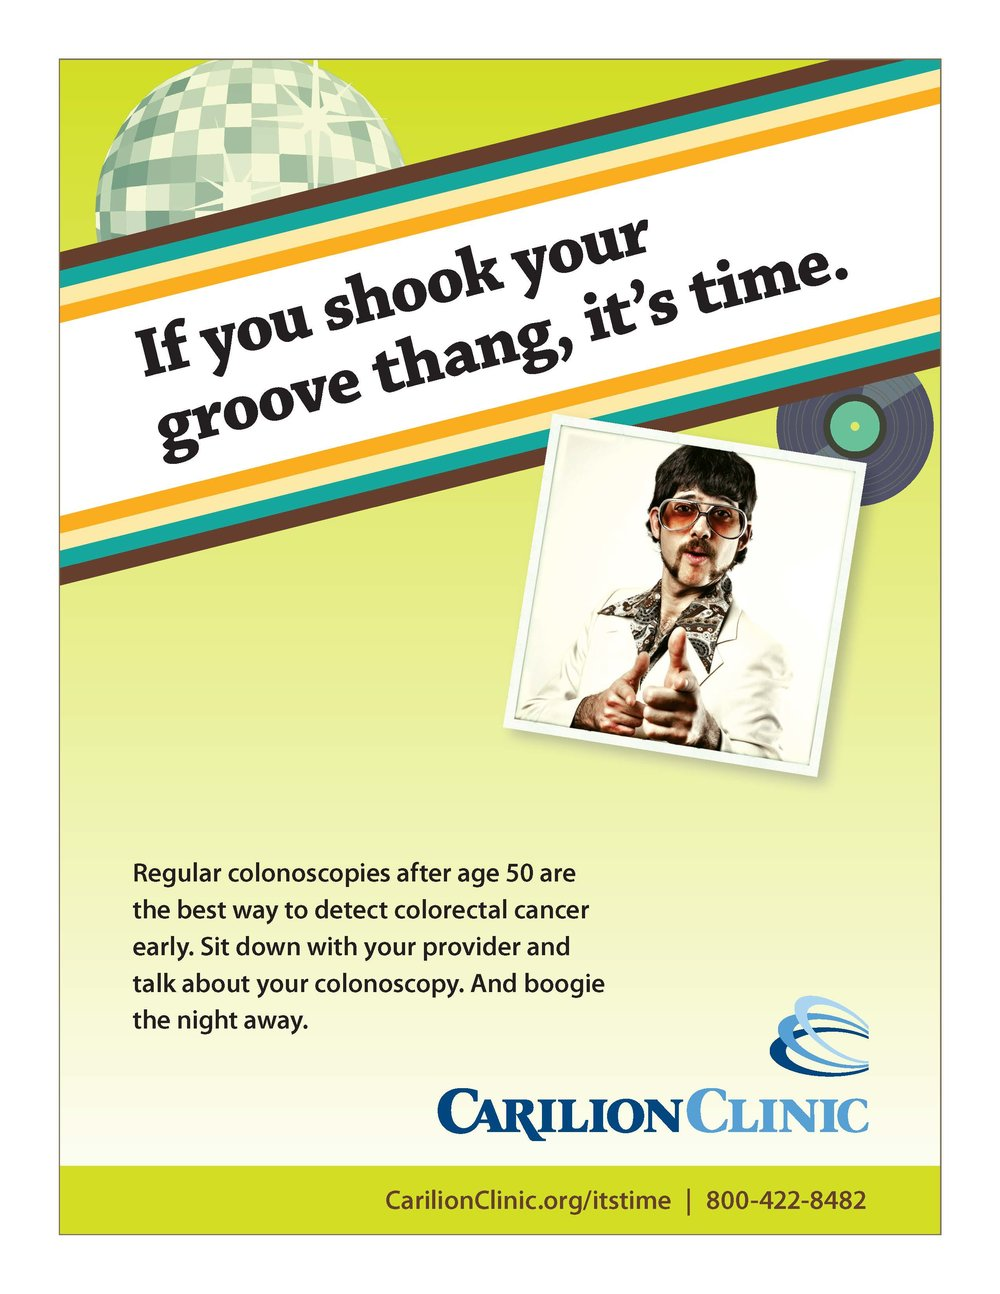 G89462 Colon Cancer Promotion Flyer_1970 Disco Guy.jpg